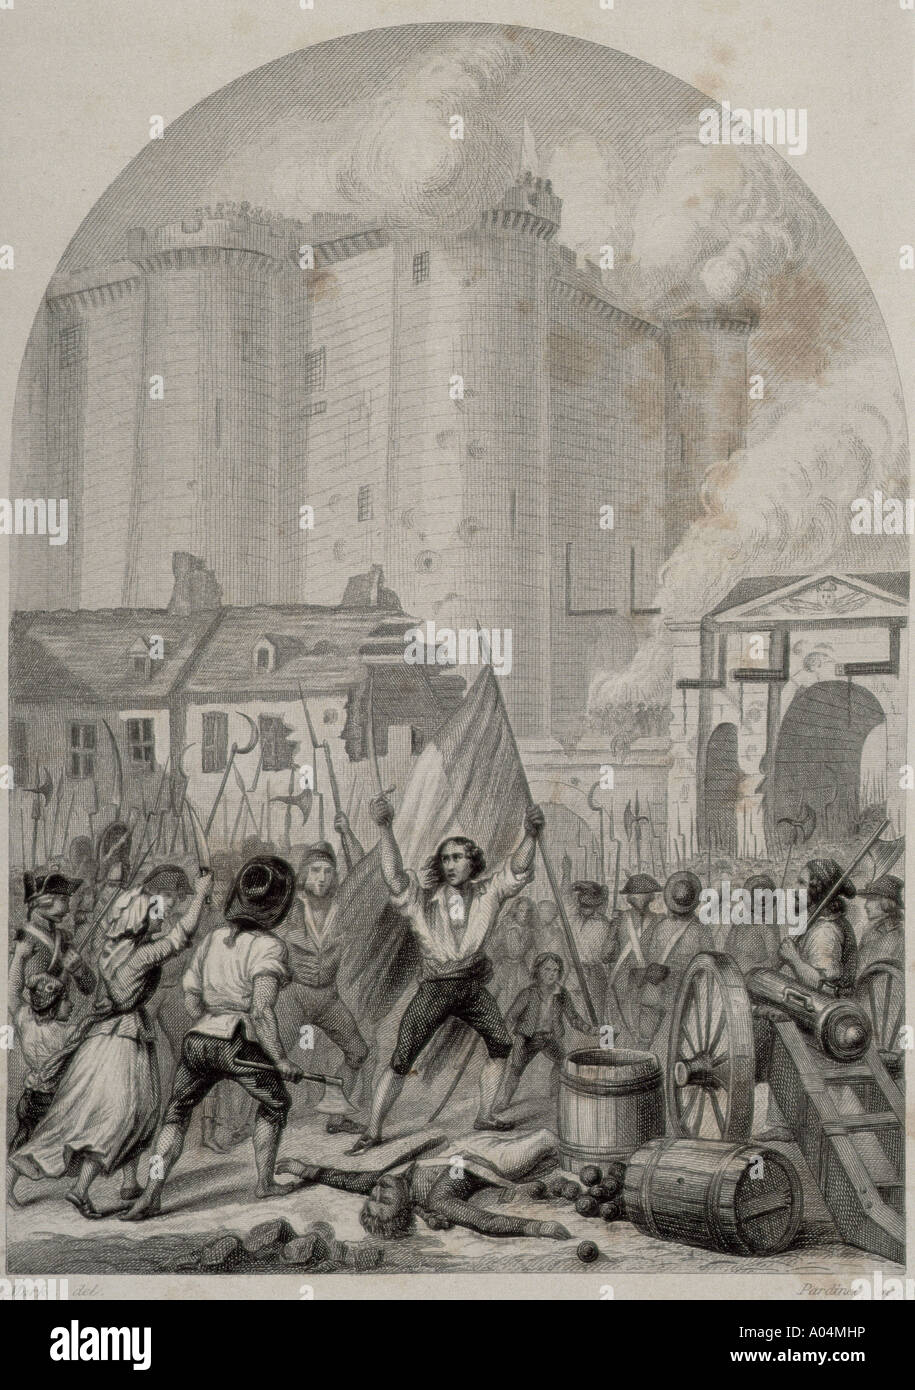 French Revolution Storming of the Bastille in Paris 14 July 1789 - Stock Image